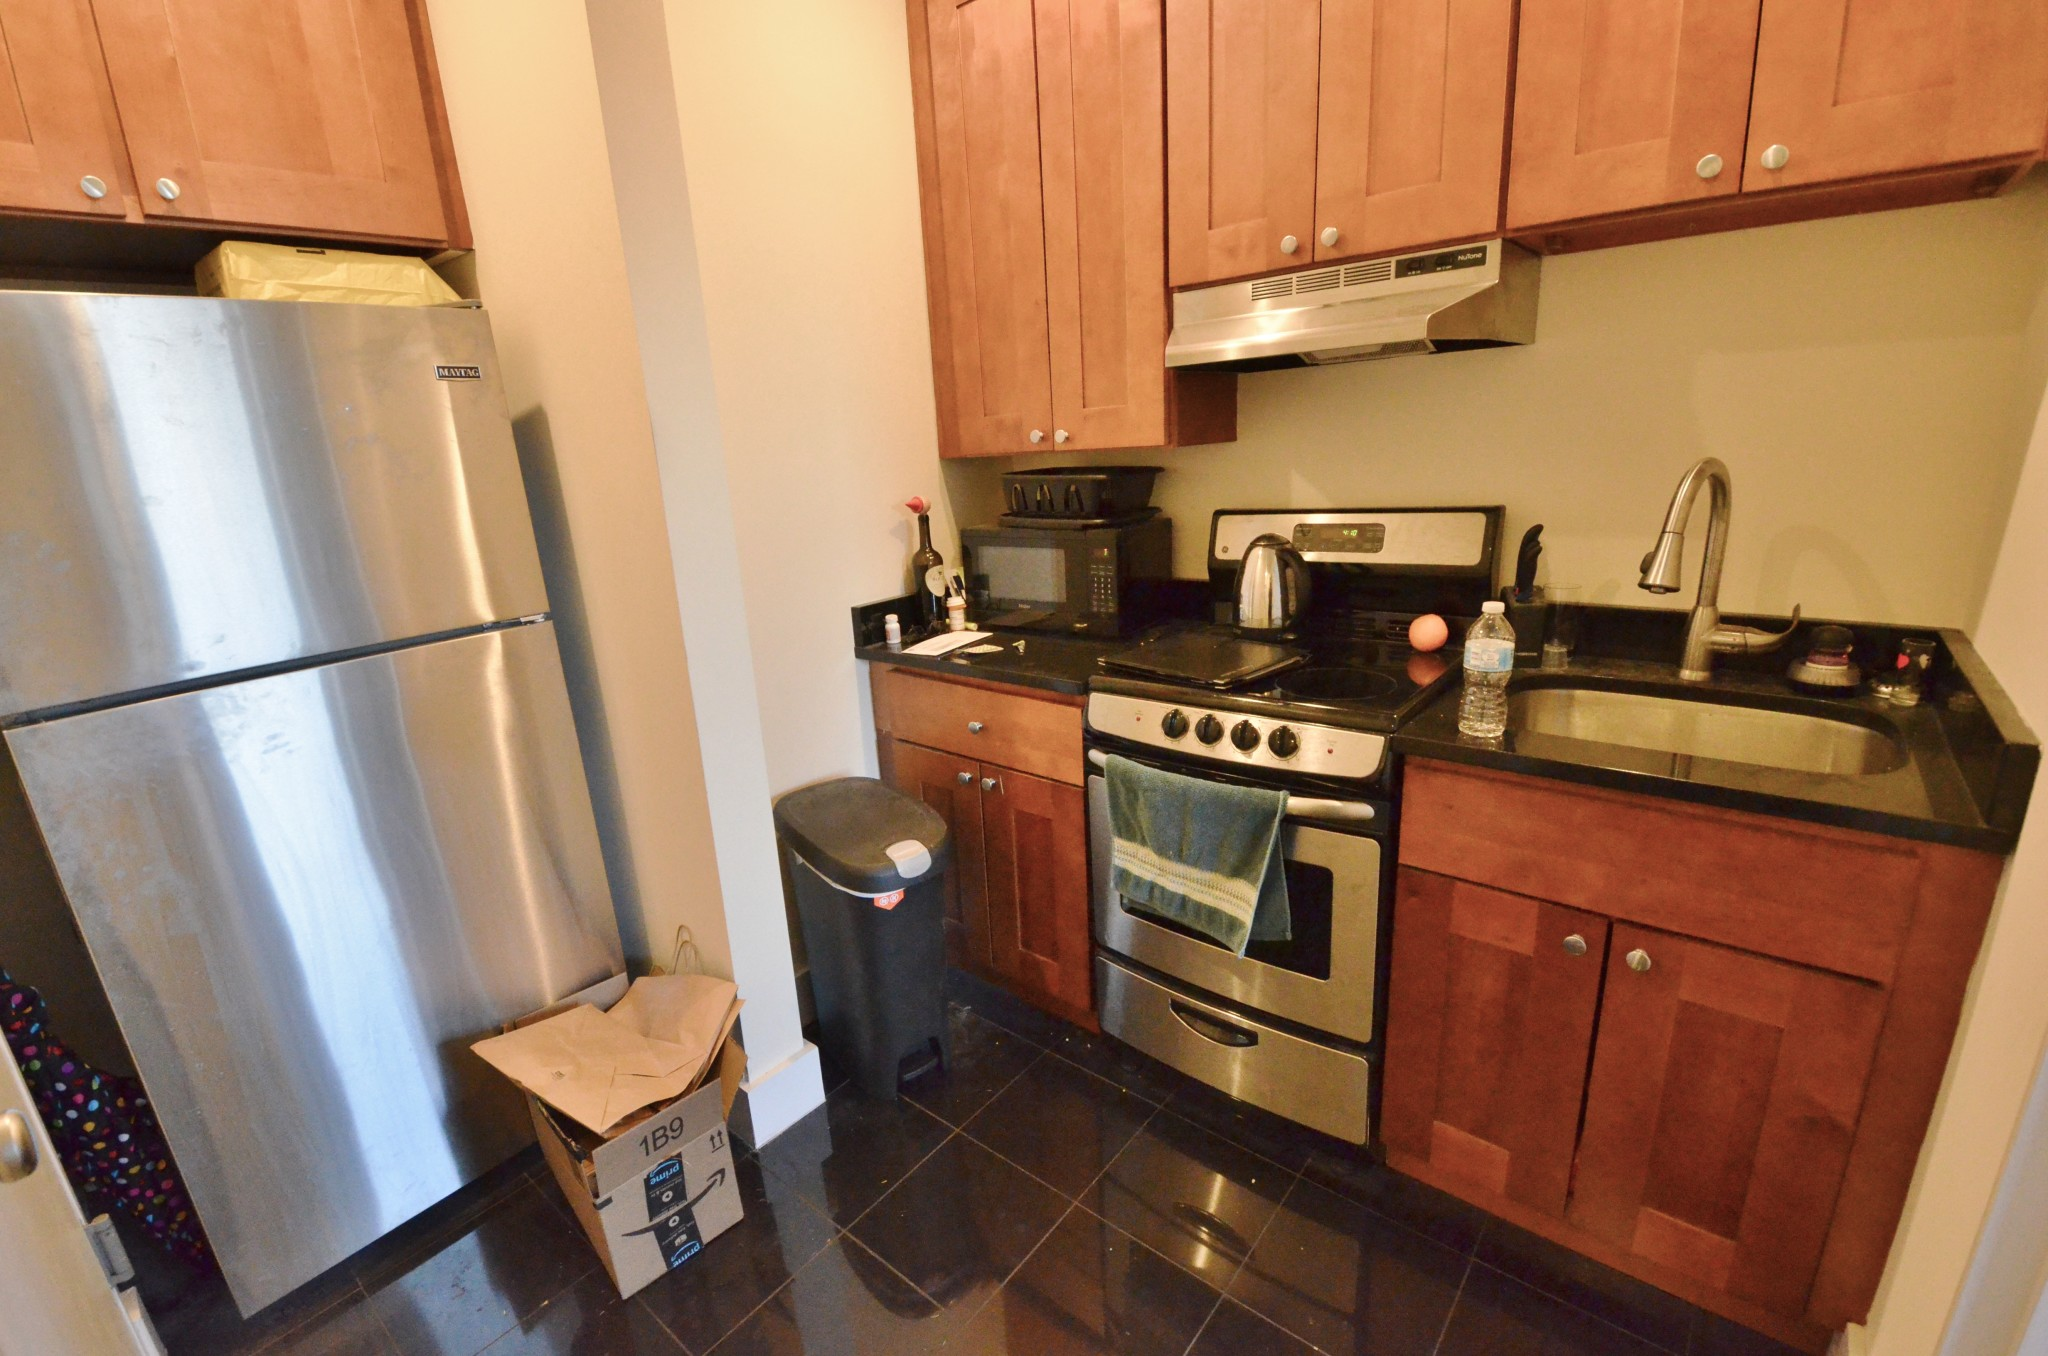 Avail 9/1 - Bright Comfortable Roomy Studio on Peterborough St